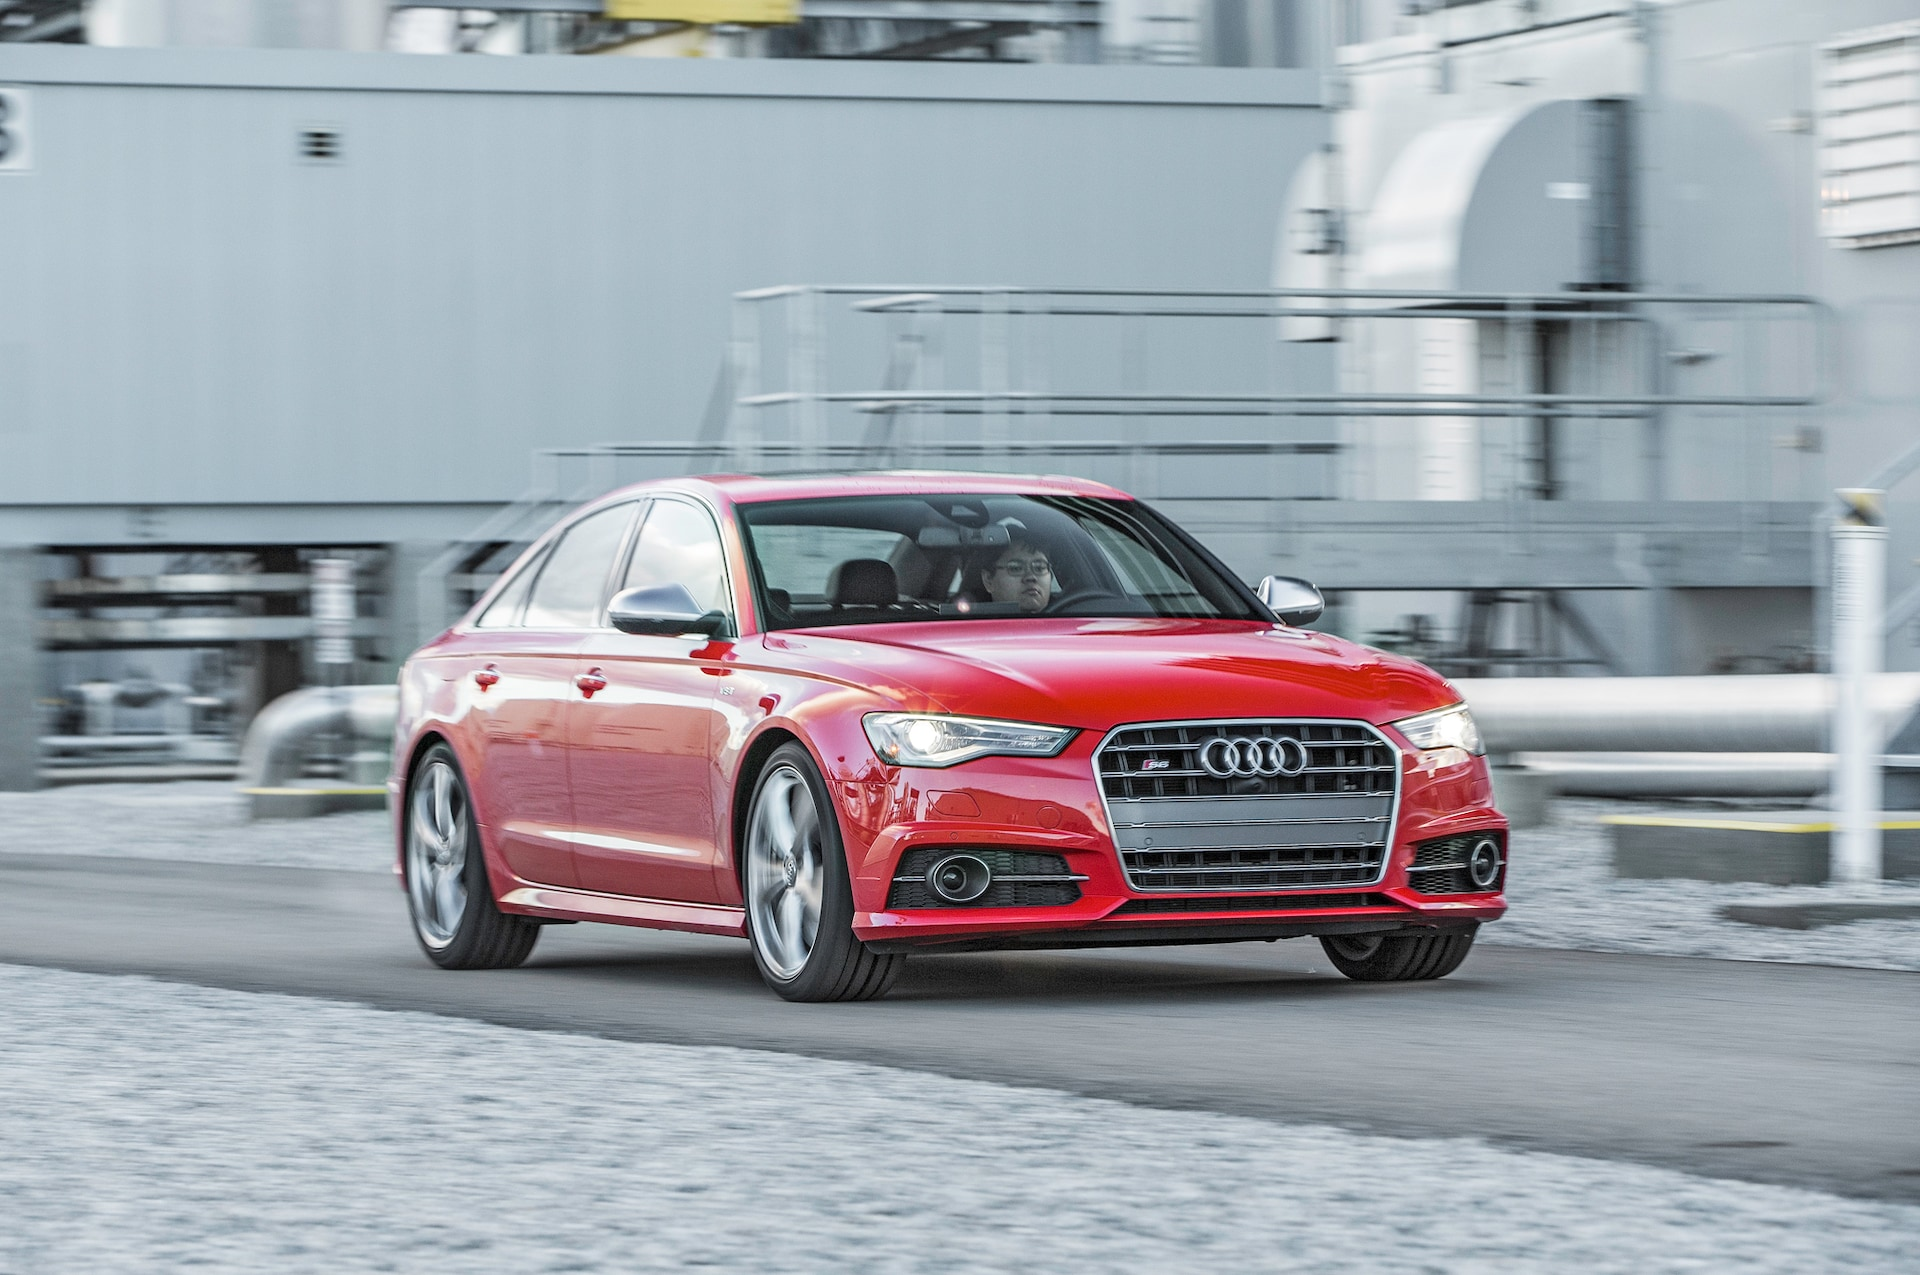 2016 Audi S6 40T Quattro front three quarter in motion